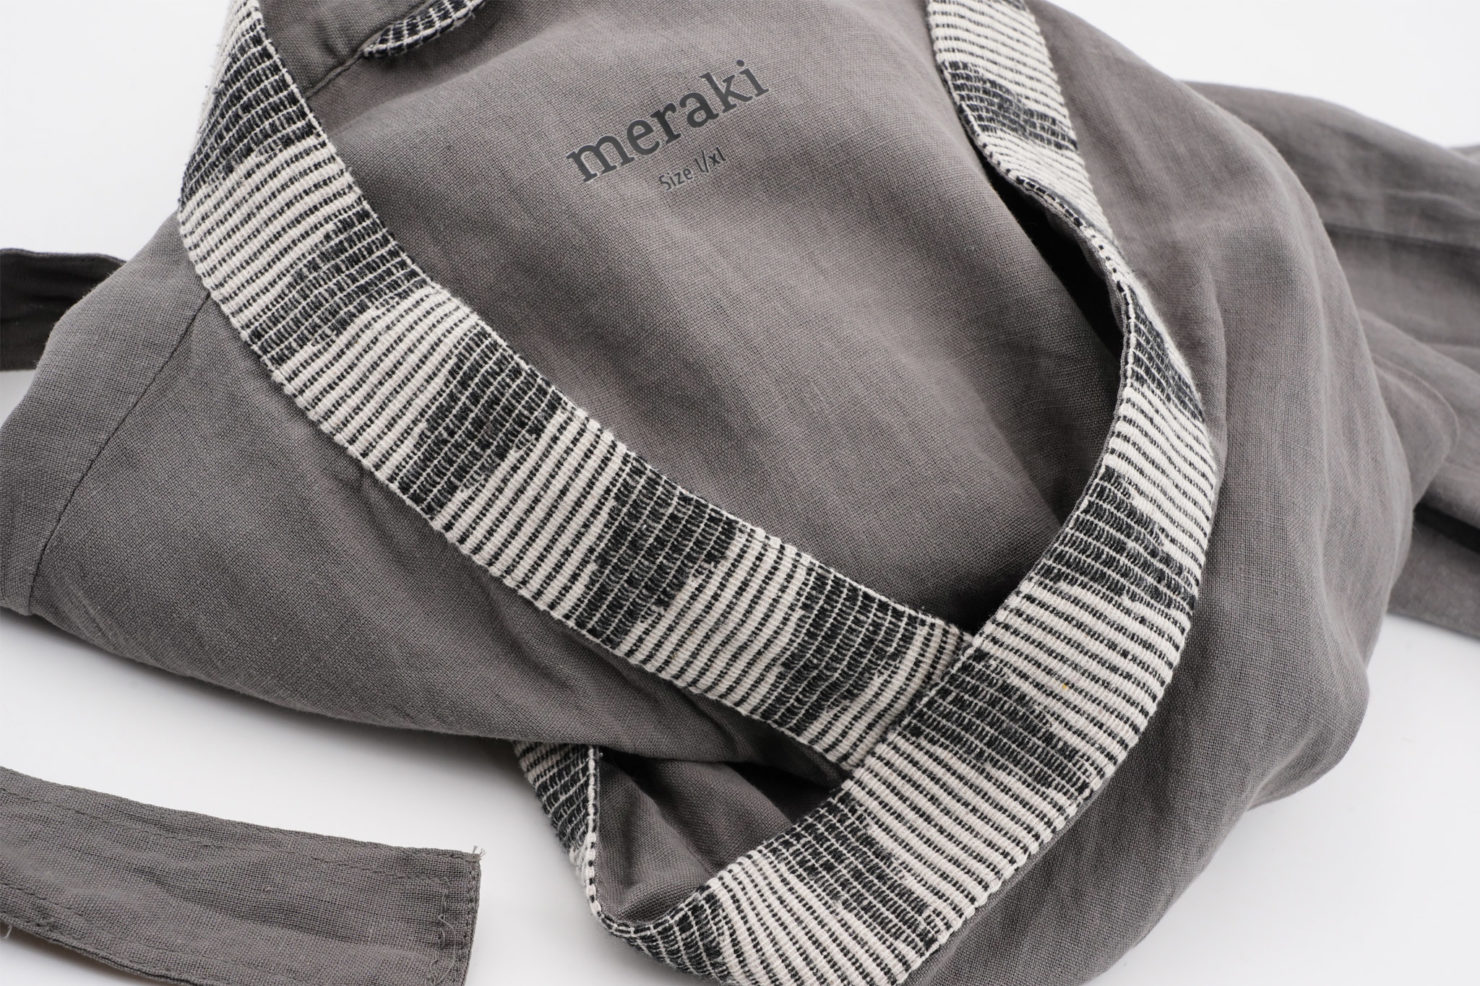 BATHROBE – MERAKI